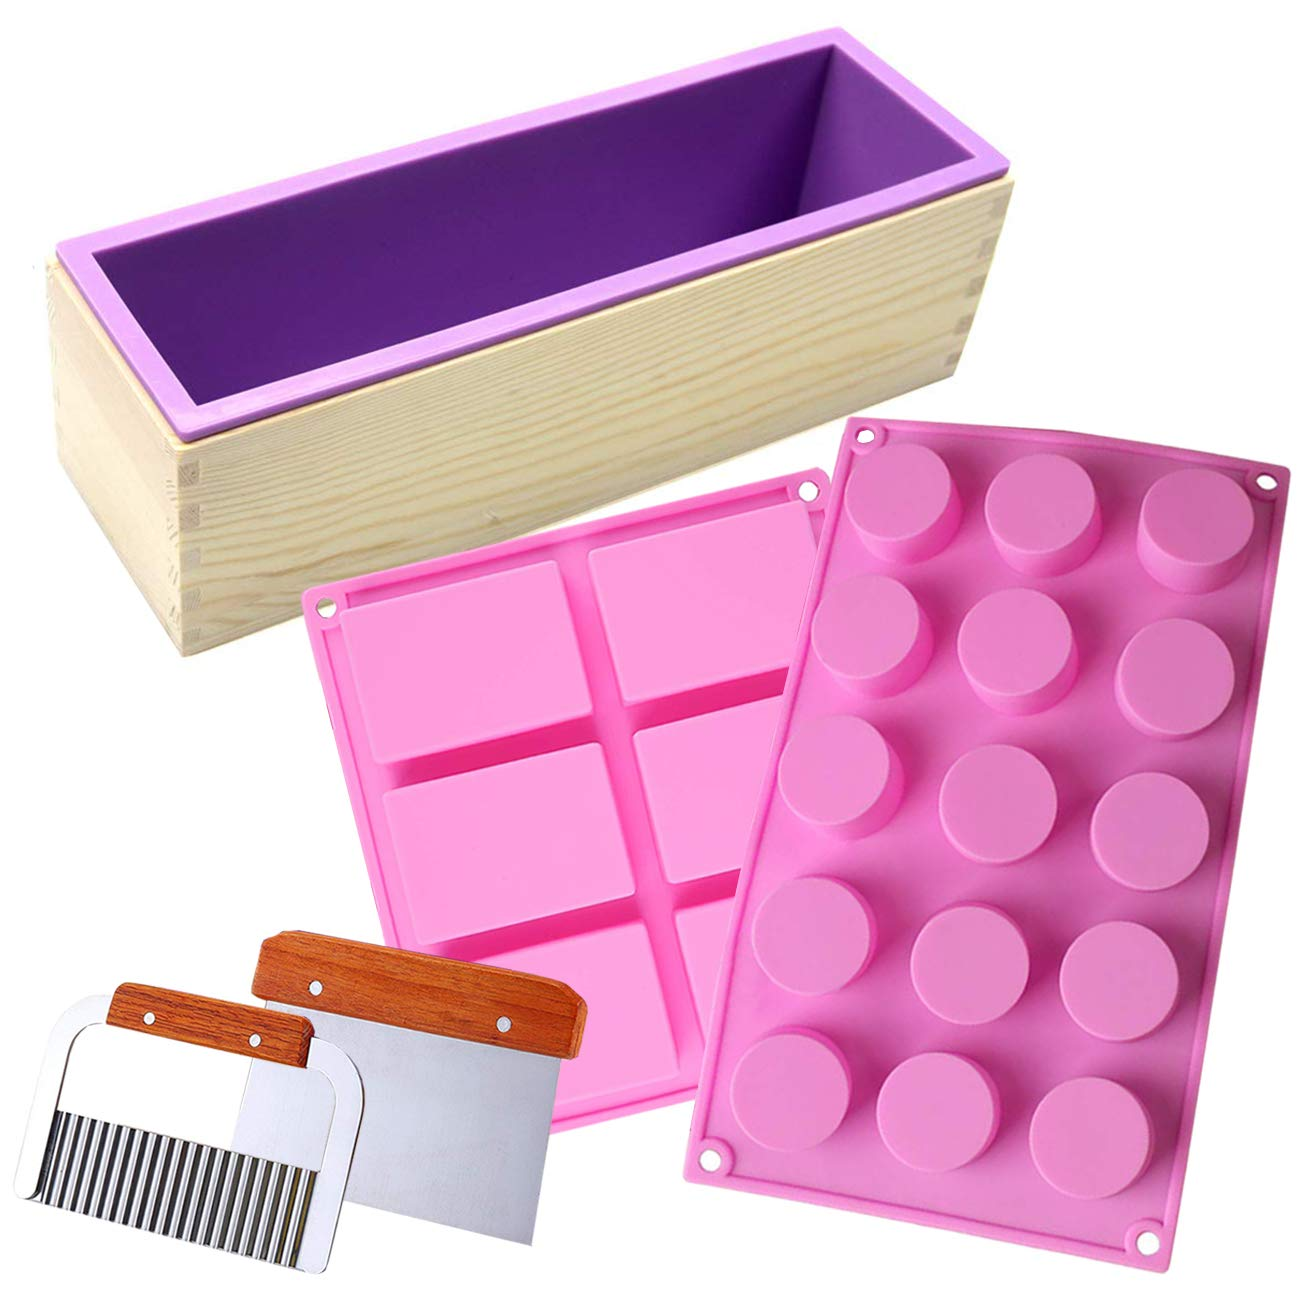 Ogrmar Silicone Soap Molds kit-42 oz Soap Mold with Wood Box, Stainless Steel Wavy & Straight Scraper,6-Cavities Rectangular Holes &15-Cavities Cylinder Mold for Soap Cake Making(Soap Molds Kit-A)